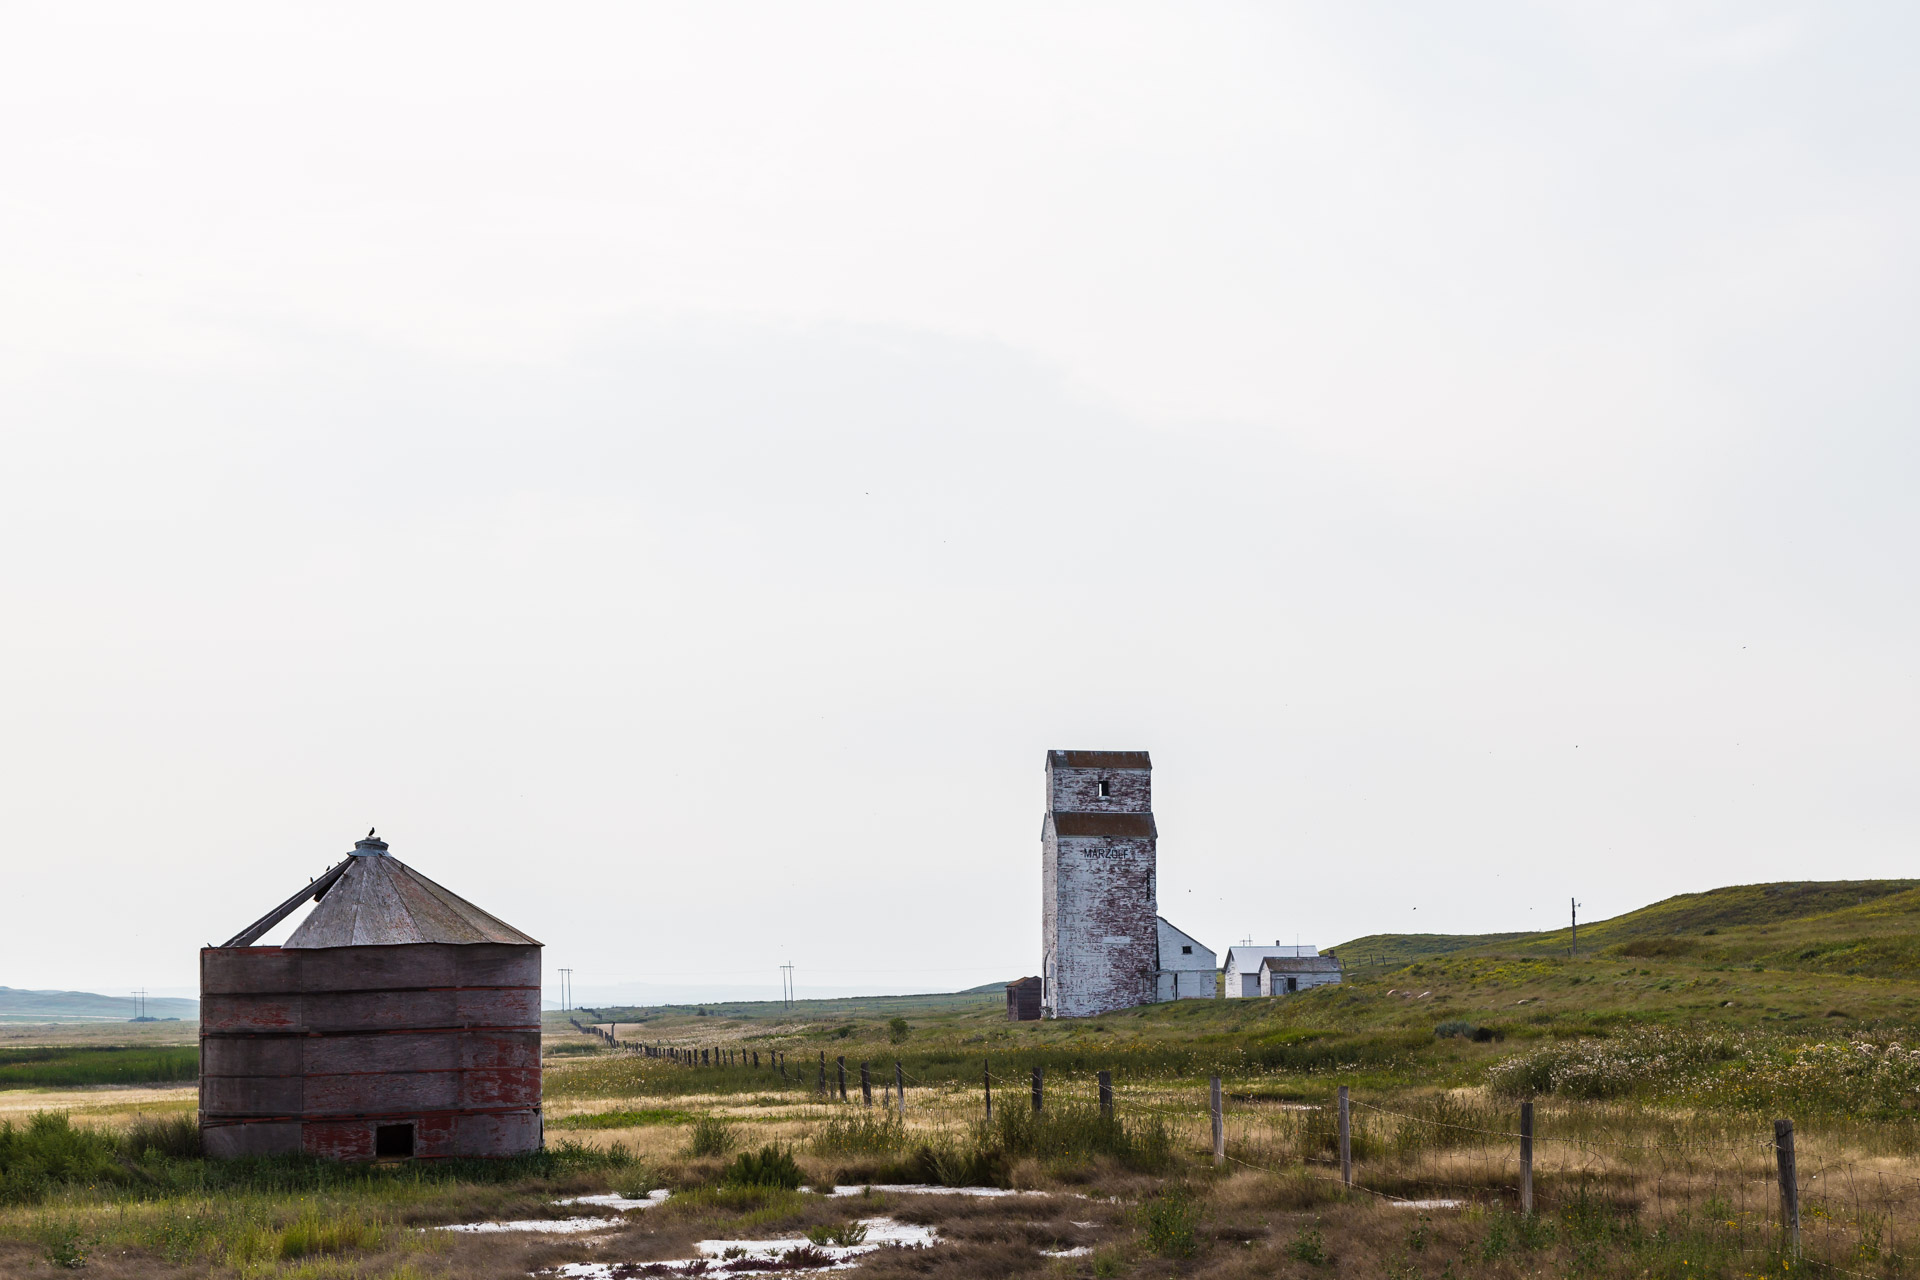 Lonely Grain Elevator (angle mid grainery)